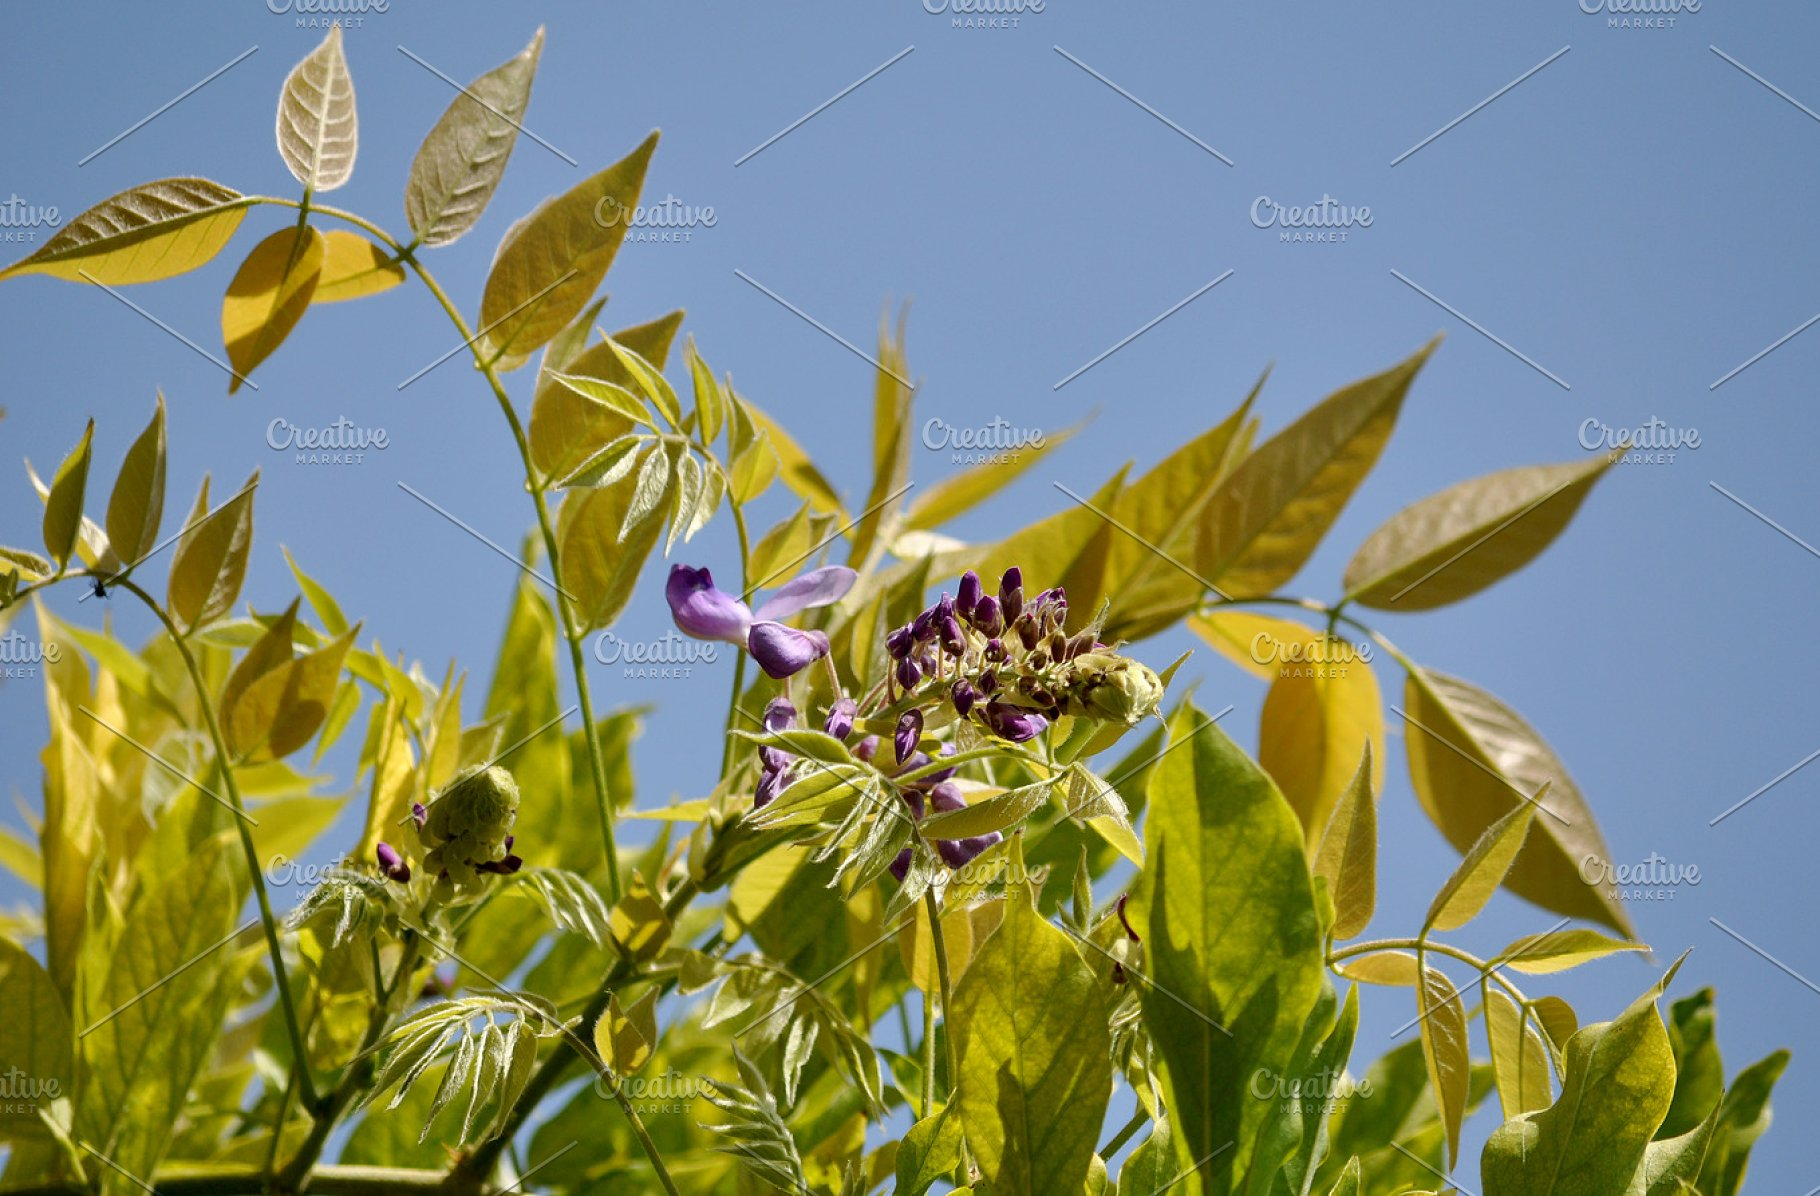 Wisteria Leaves And Blossom High Quality Nature Stock Photos